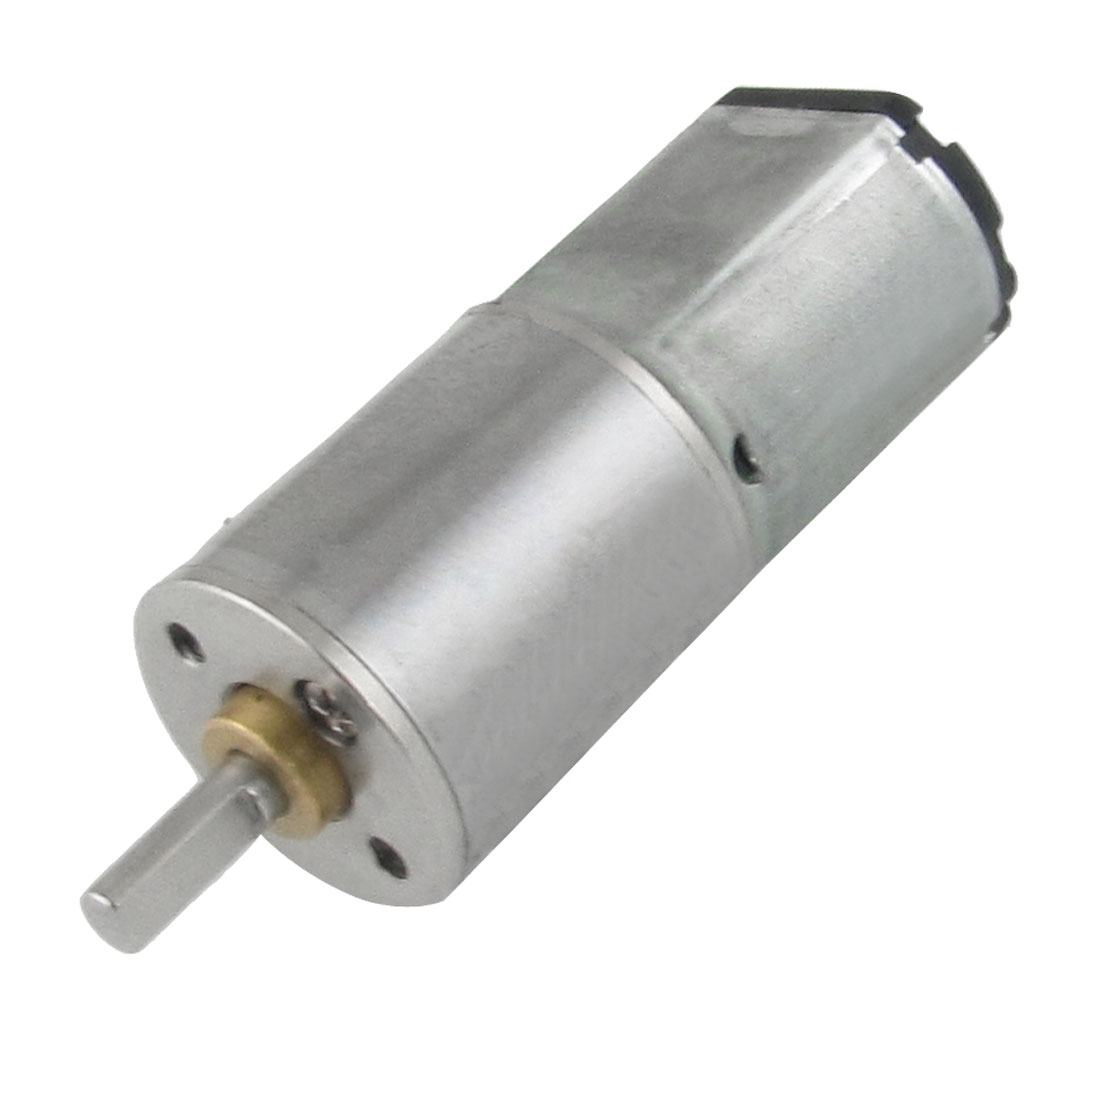 3mm-Shaft-6RPM-6V-0-06A-DC-16mm-Diameter-Gear-Box-Geared-Motor